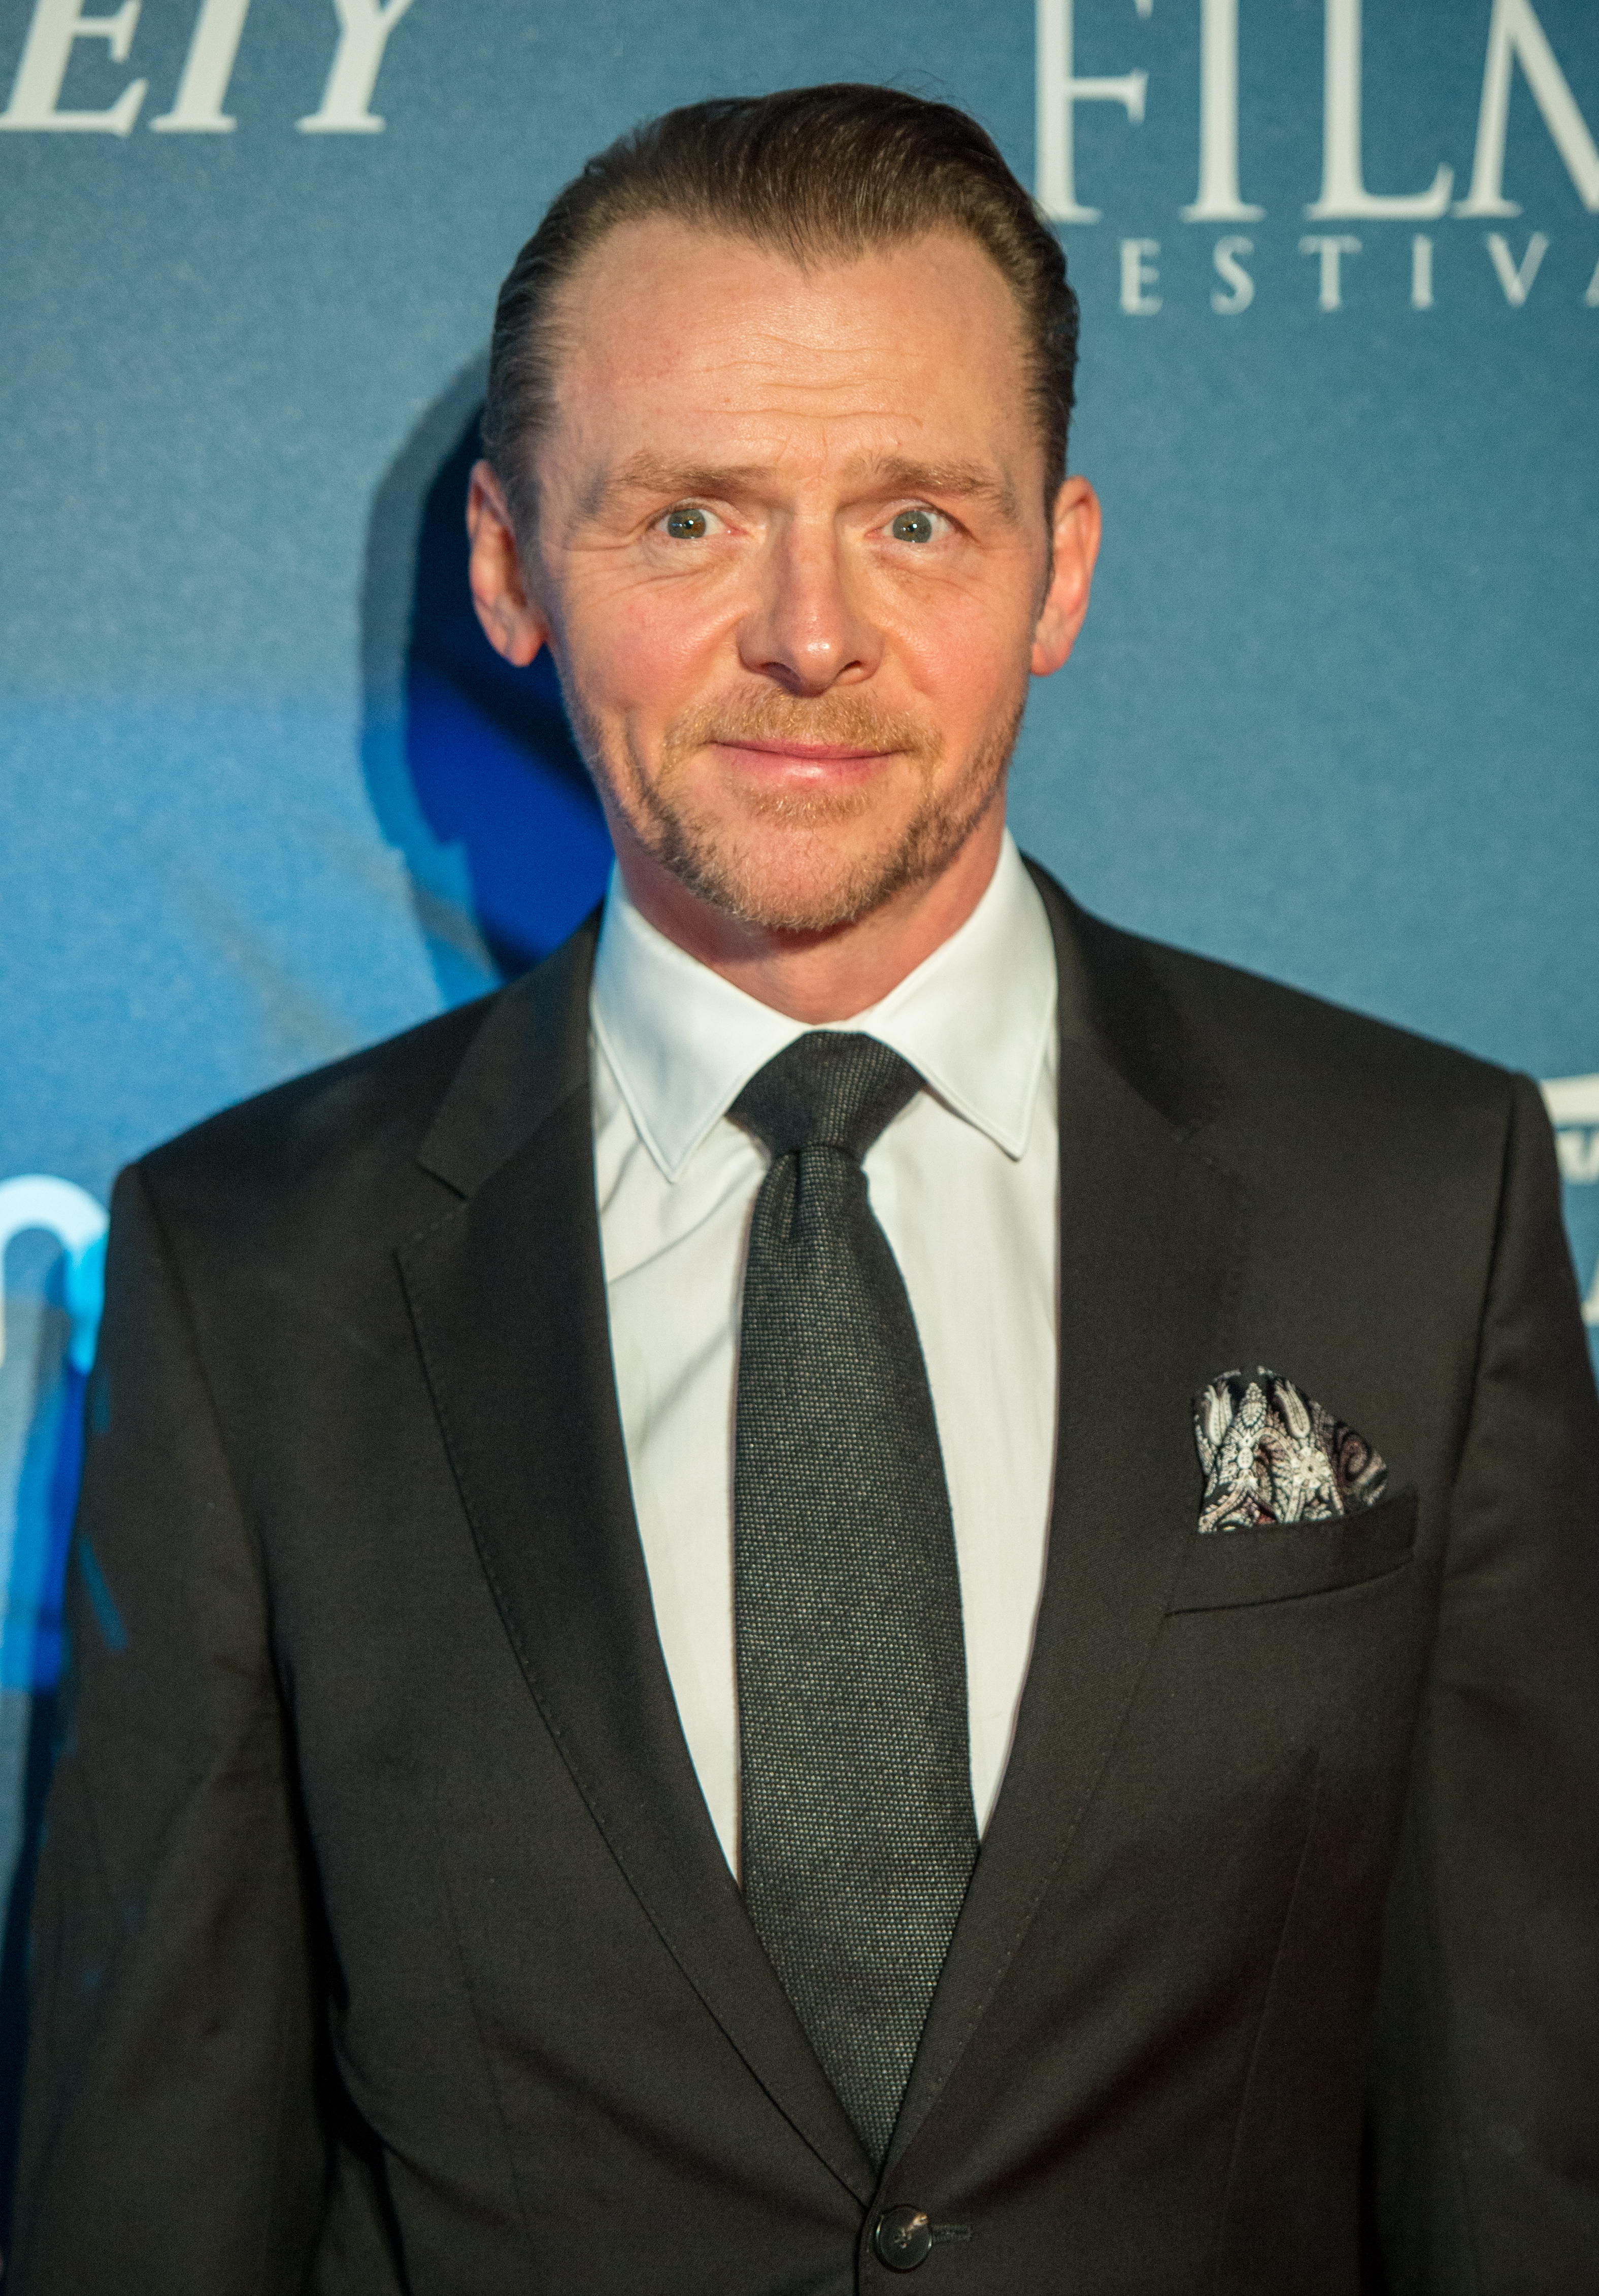 Simon Pegg attends the 'Newport Beach Film Festival' annual UK honours at The Rosewood Hotel on February 15, 2018 in London, England.